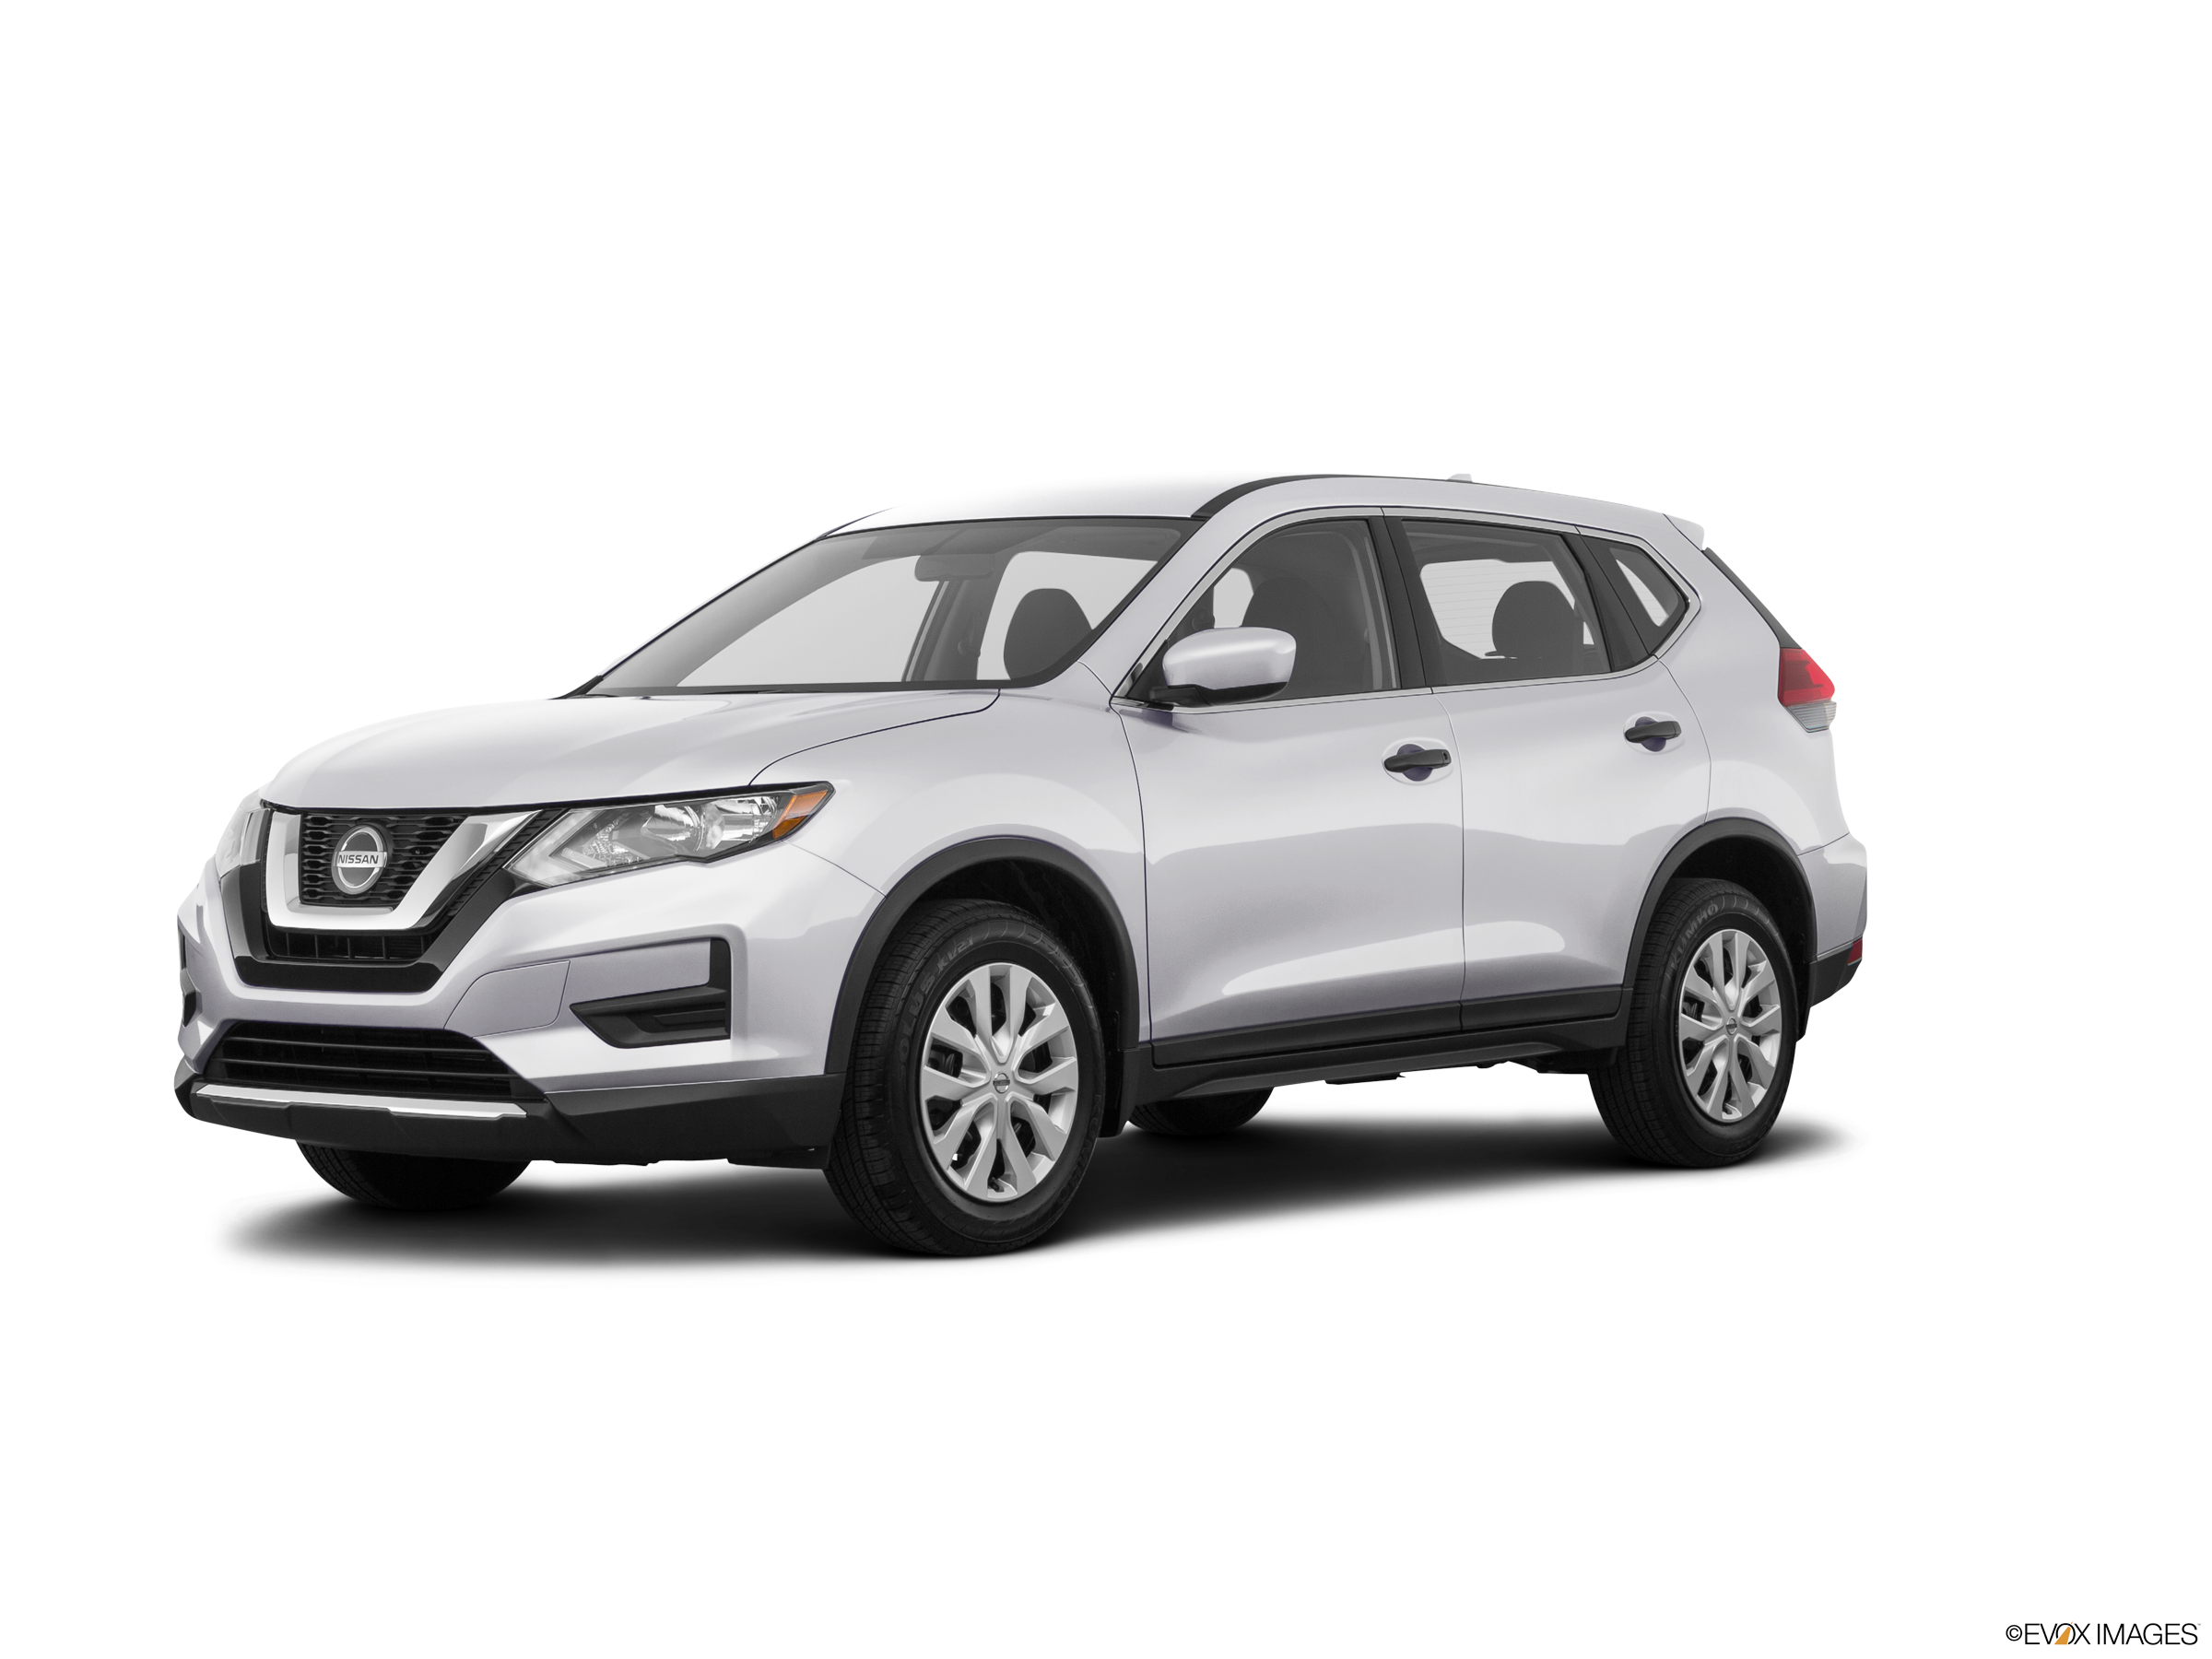 25 Best-Selling SUVs of 2018 - Nissan Rogue